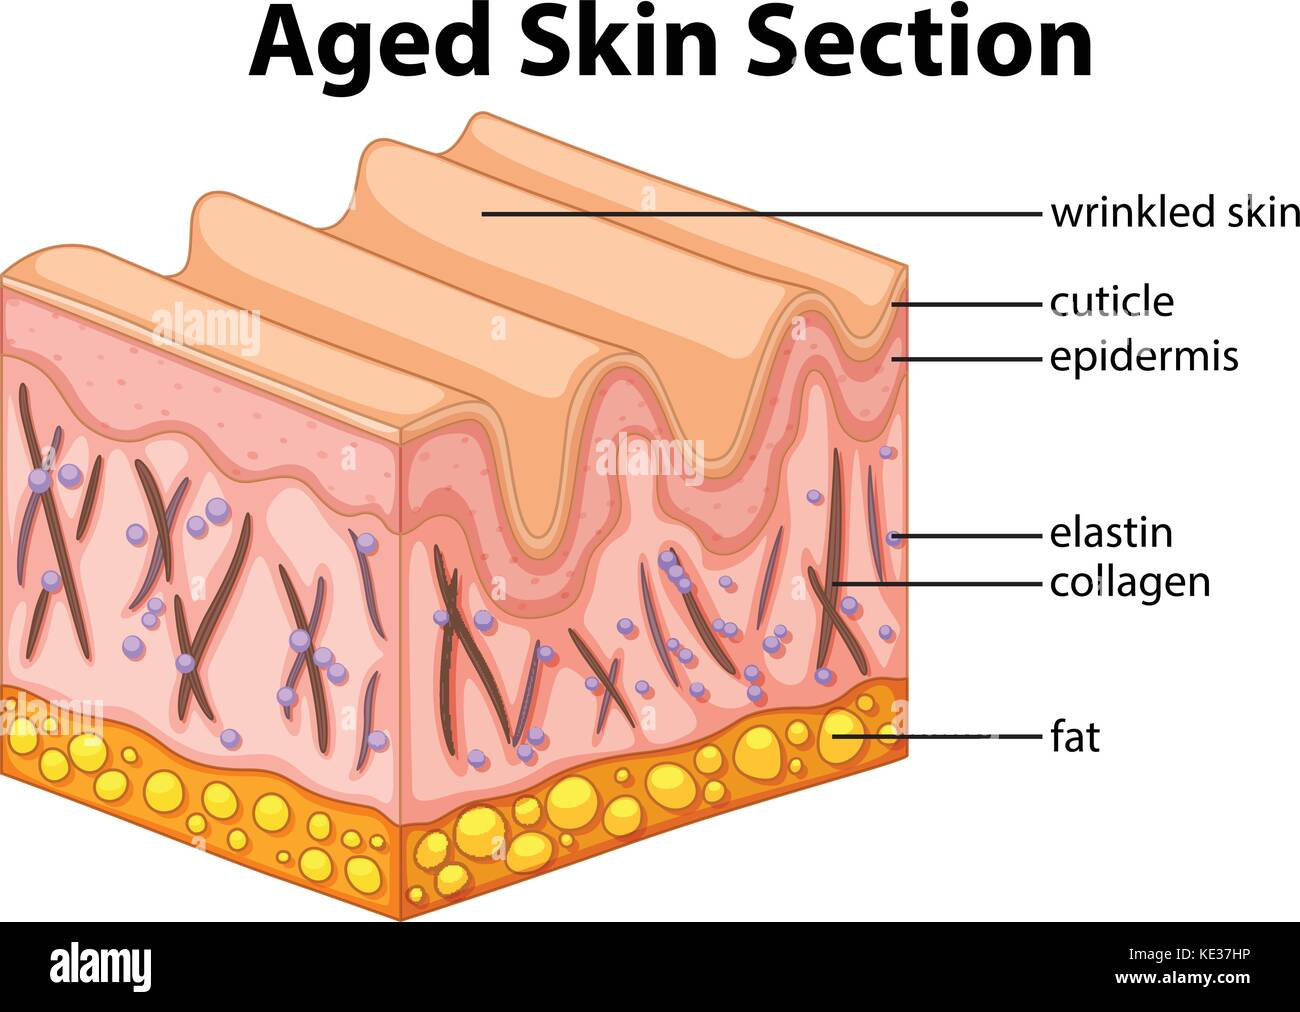 hight resolution of aged skin section diagram illustration stock image